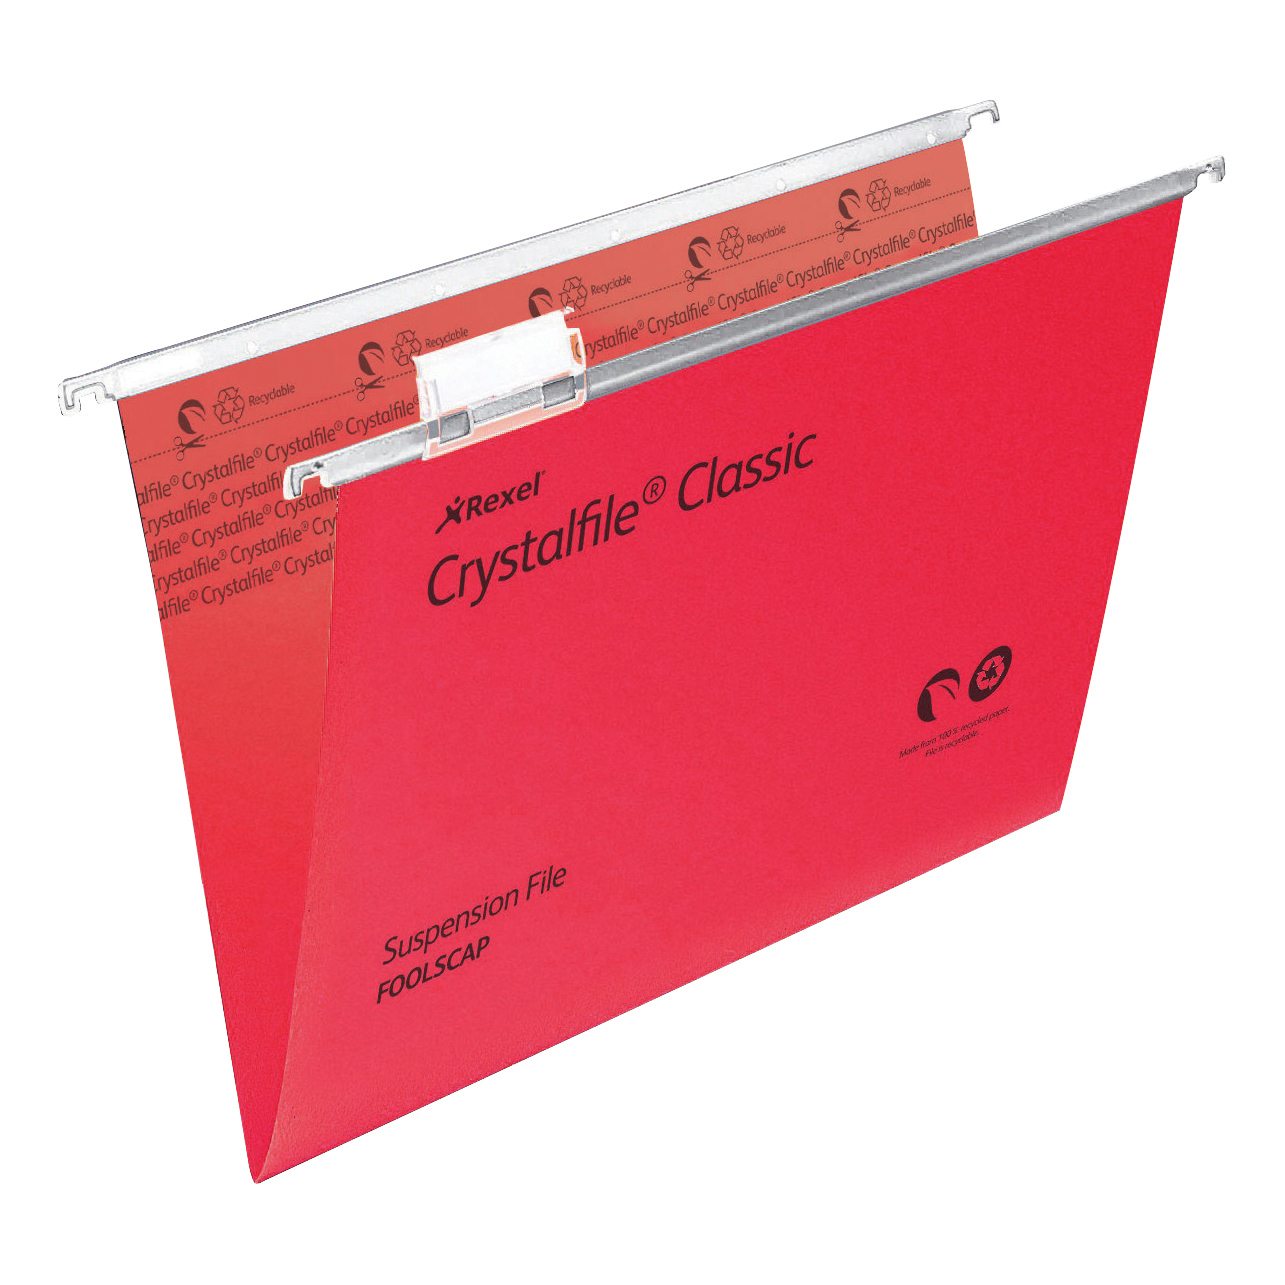 Suspension File Rexel Crystalfile Classic Suspension File Manilla V-base Foolscap Red Ref 78141 Pack 50